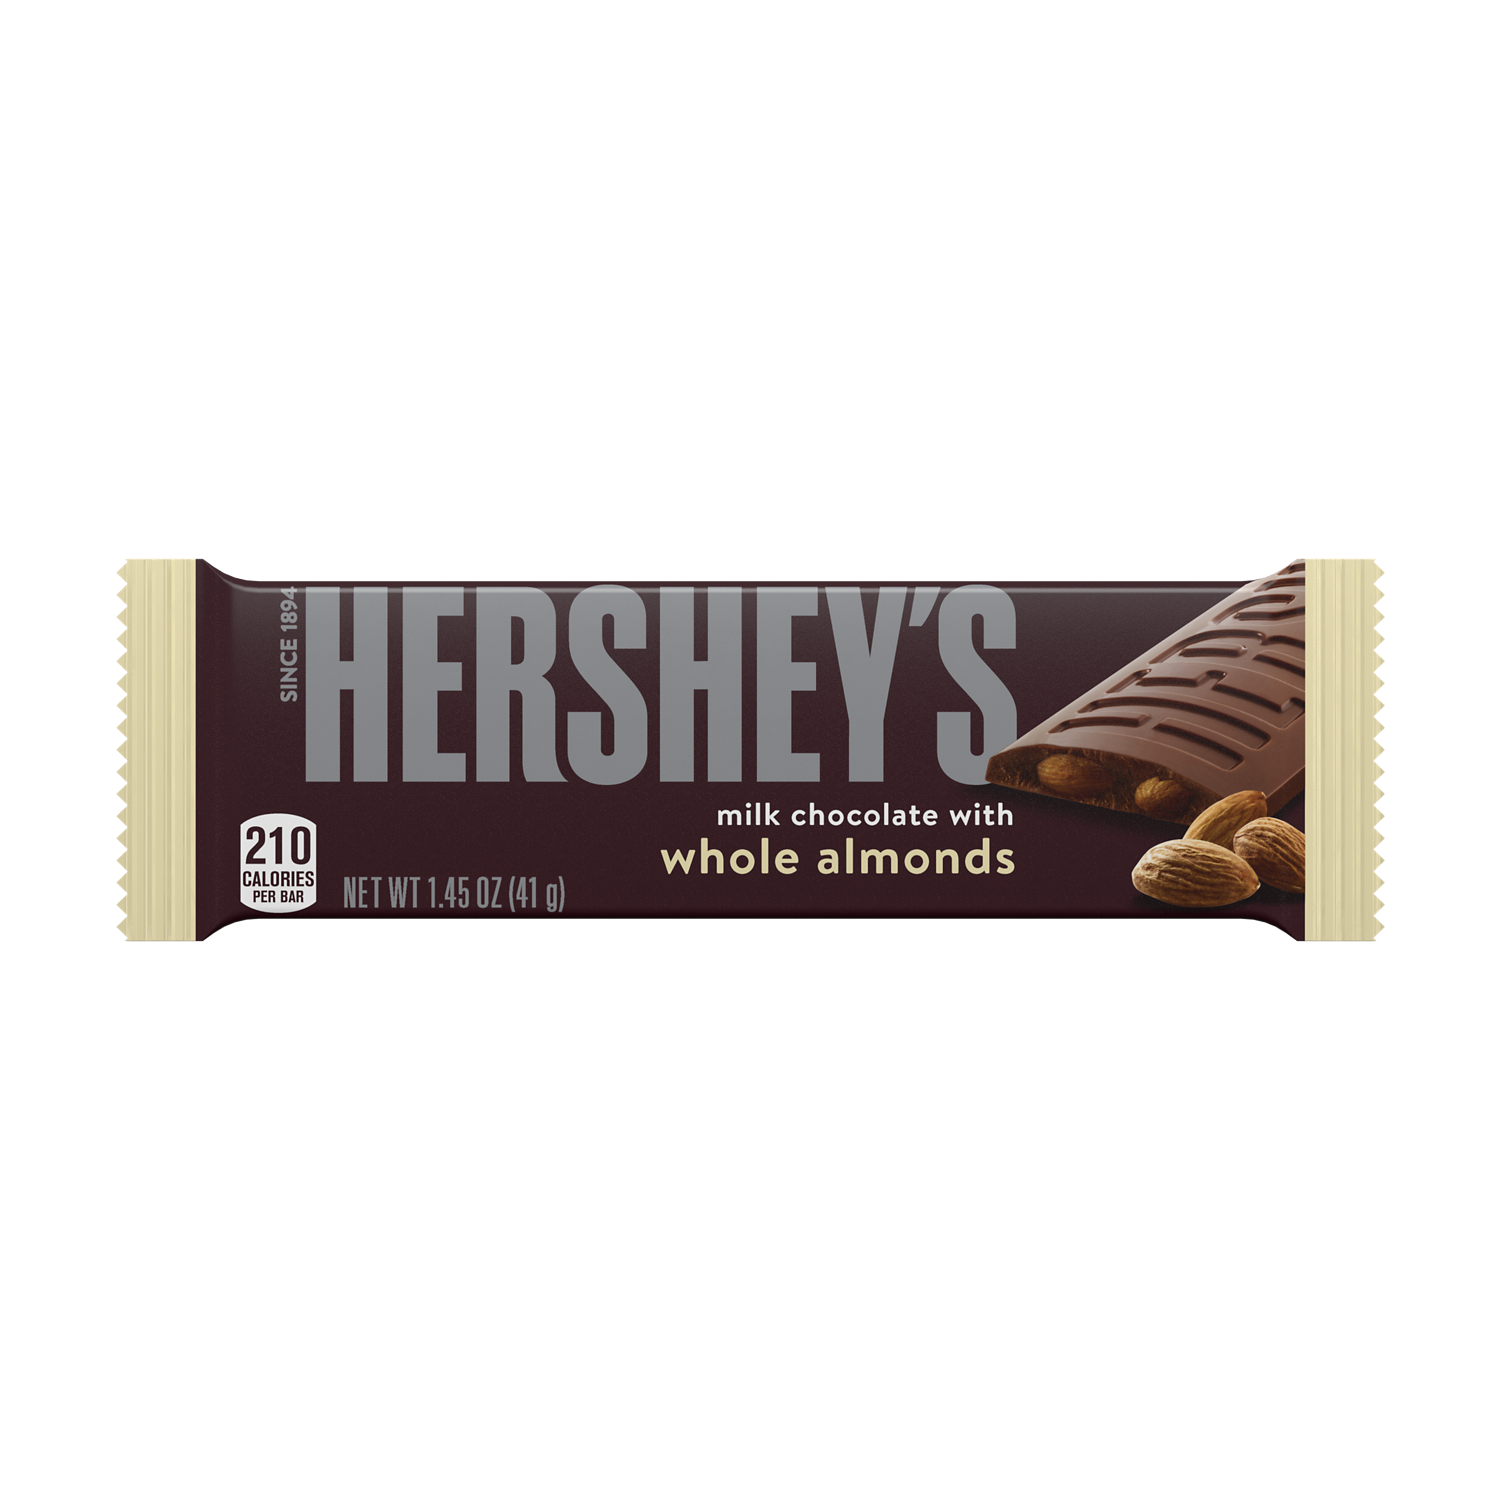 HERSHEY'S Milk Chocolate with Almonds Candy Bar, 1.45 oz - Front of Package